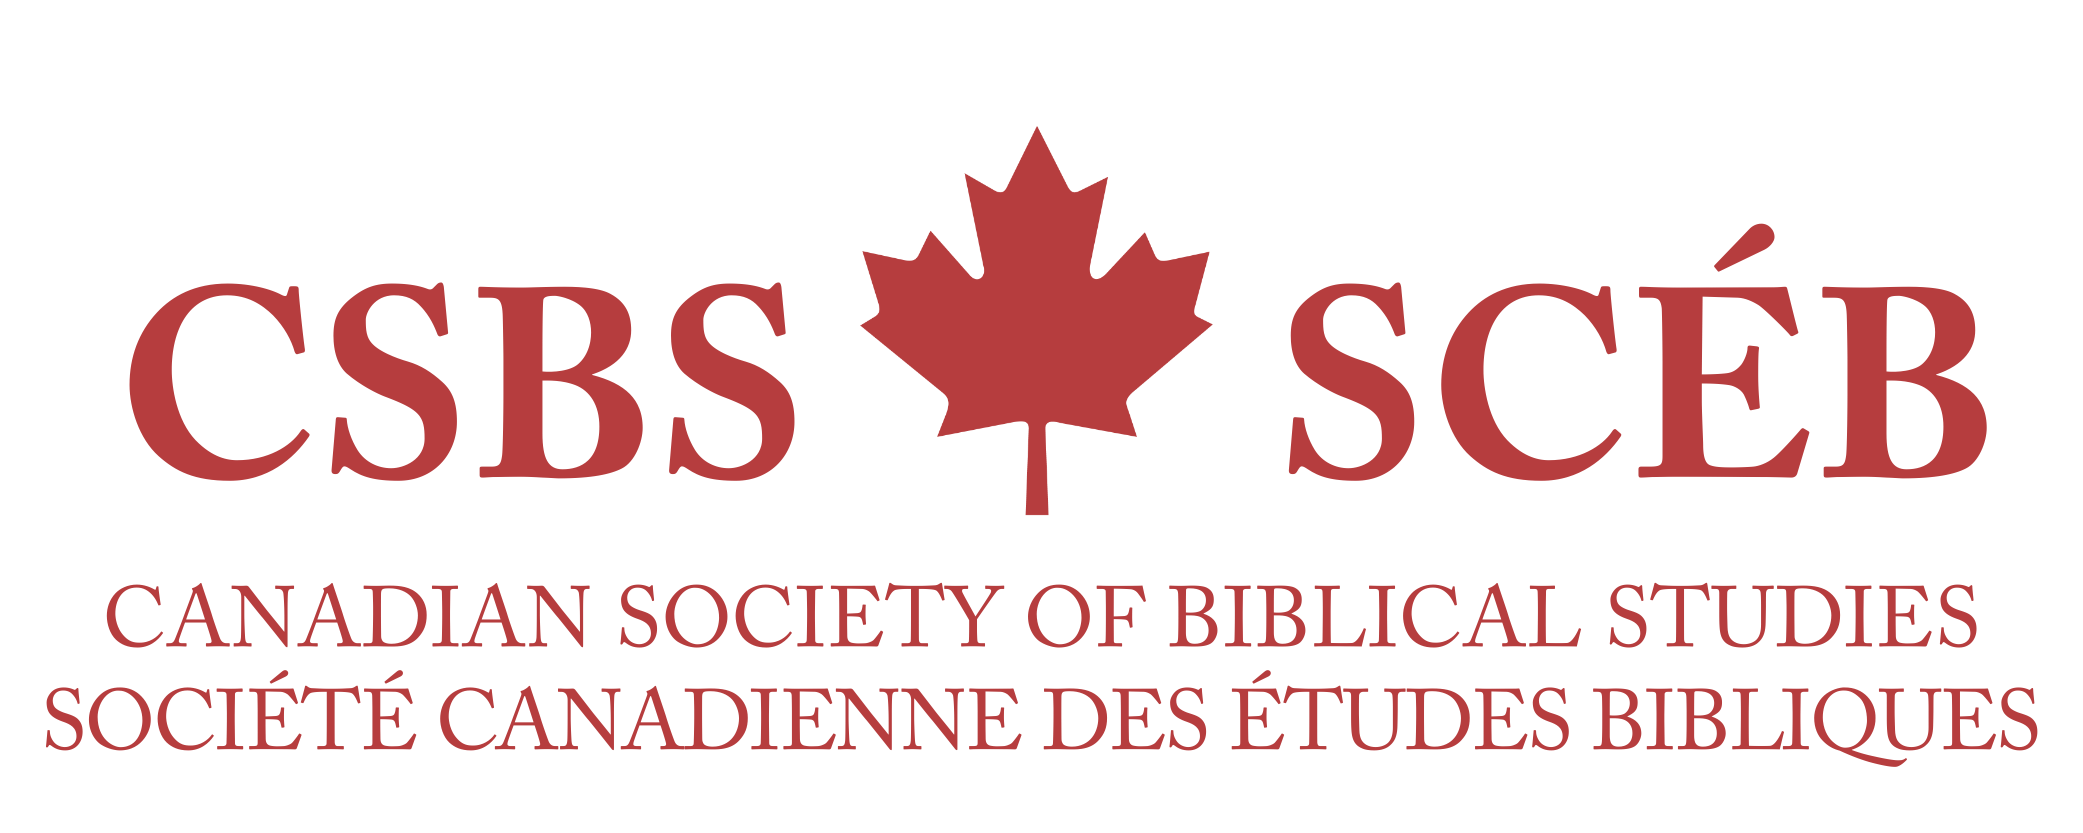 Canadian Society of Biblical Studies